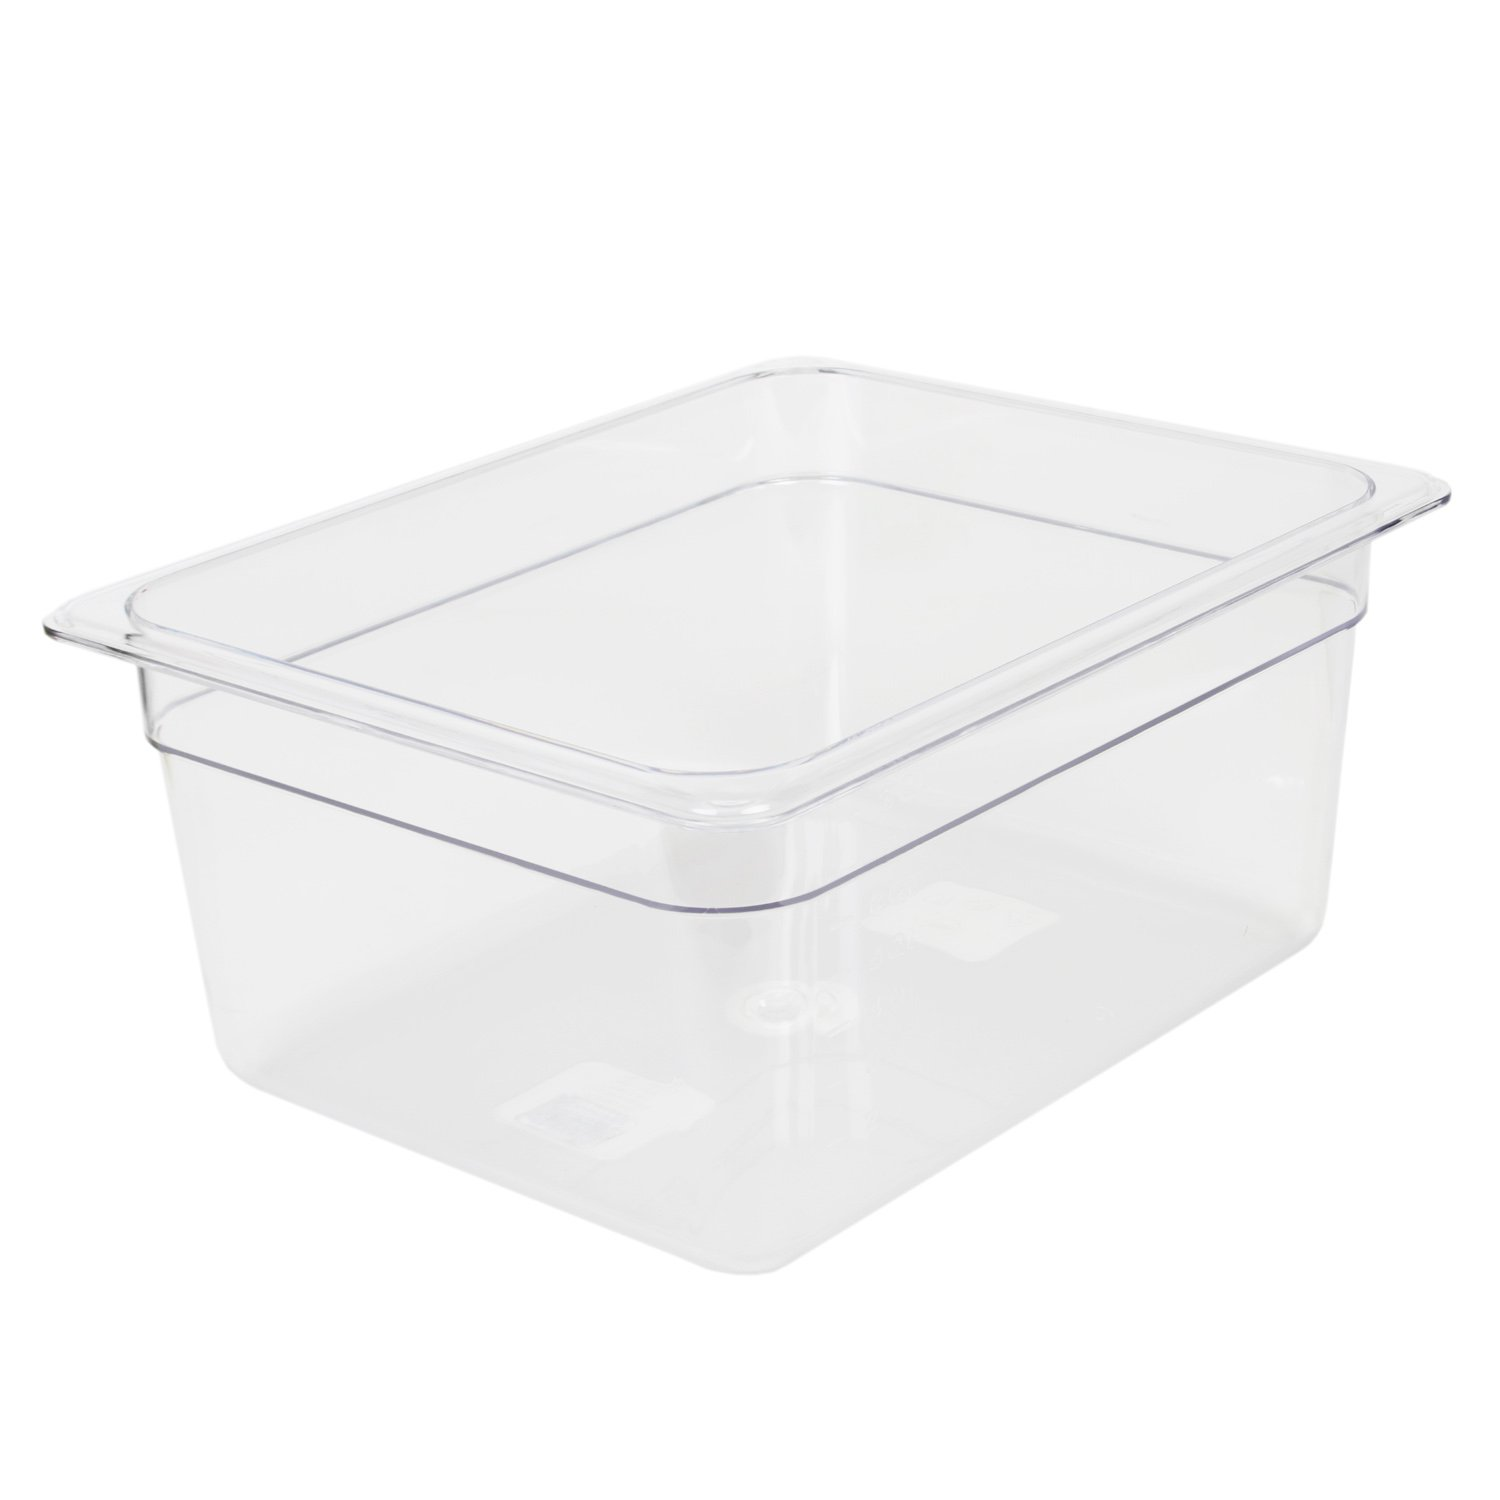 Excellante 849851007048 Deep Polycarbonate Food Pan, 6